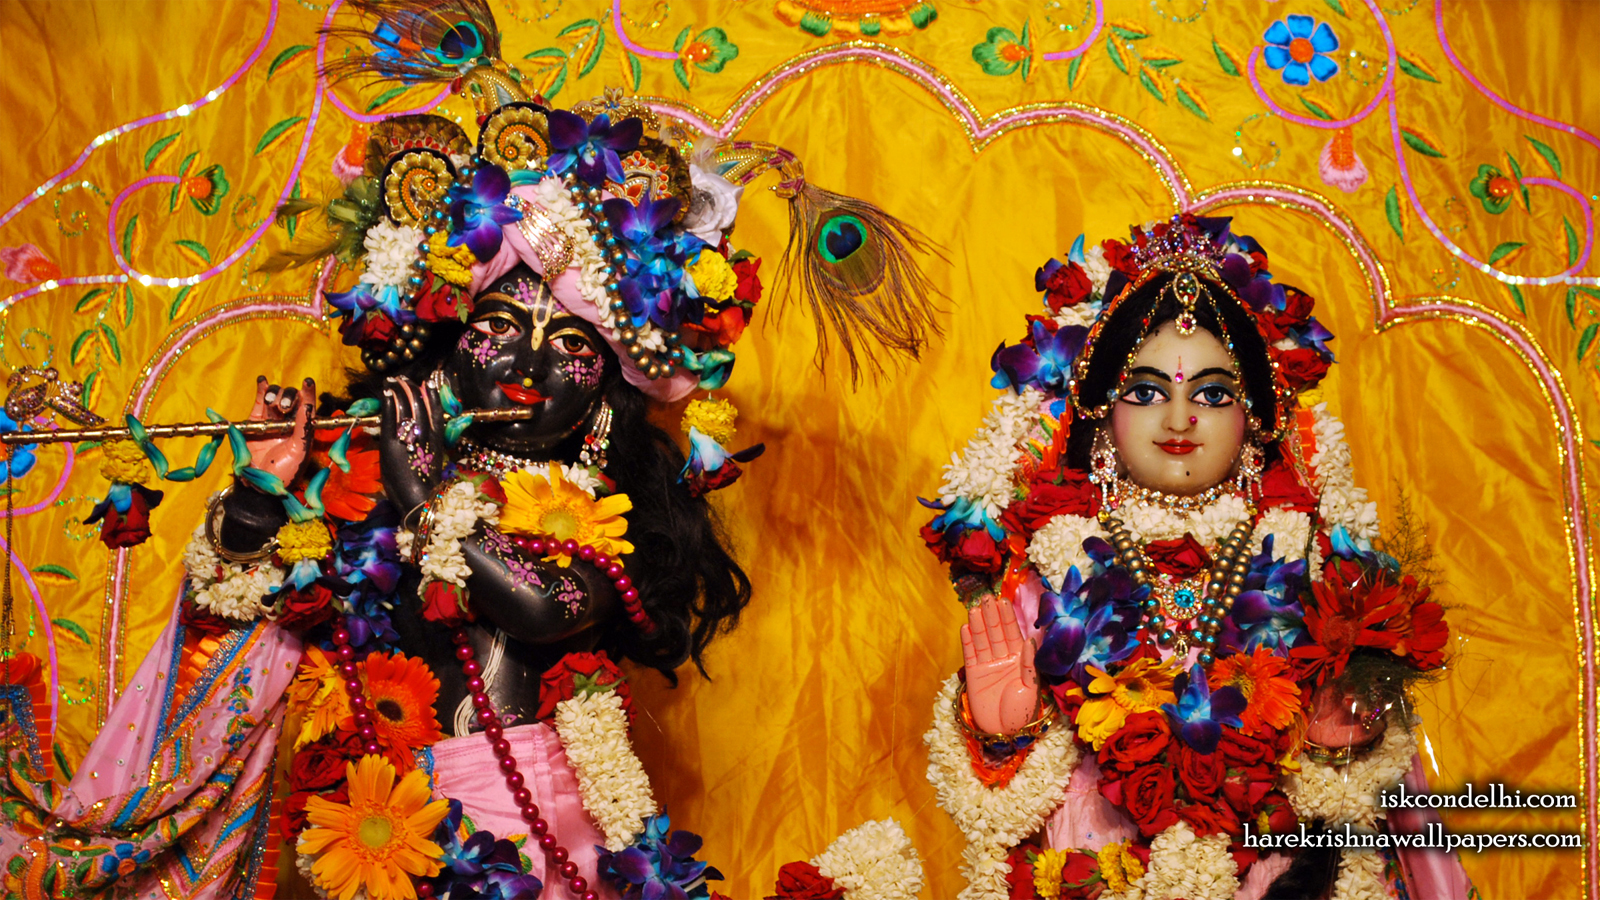 Sri Sri Radha Parthasarathi Close up Wallpaper (004) Size 1600x900 Download